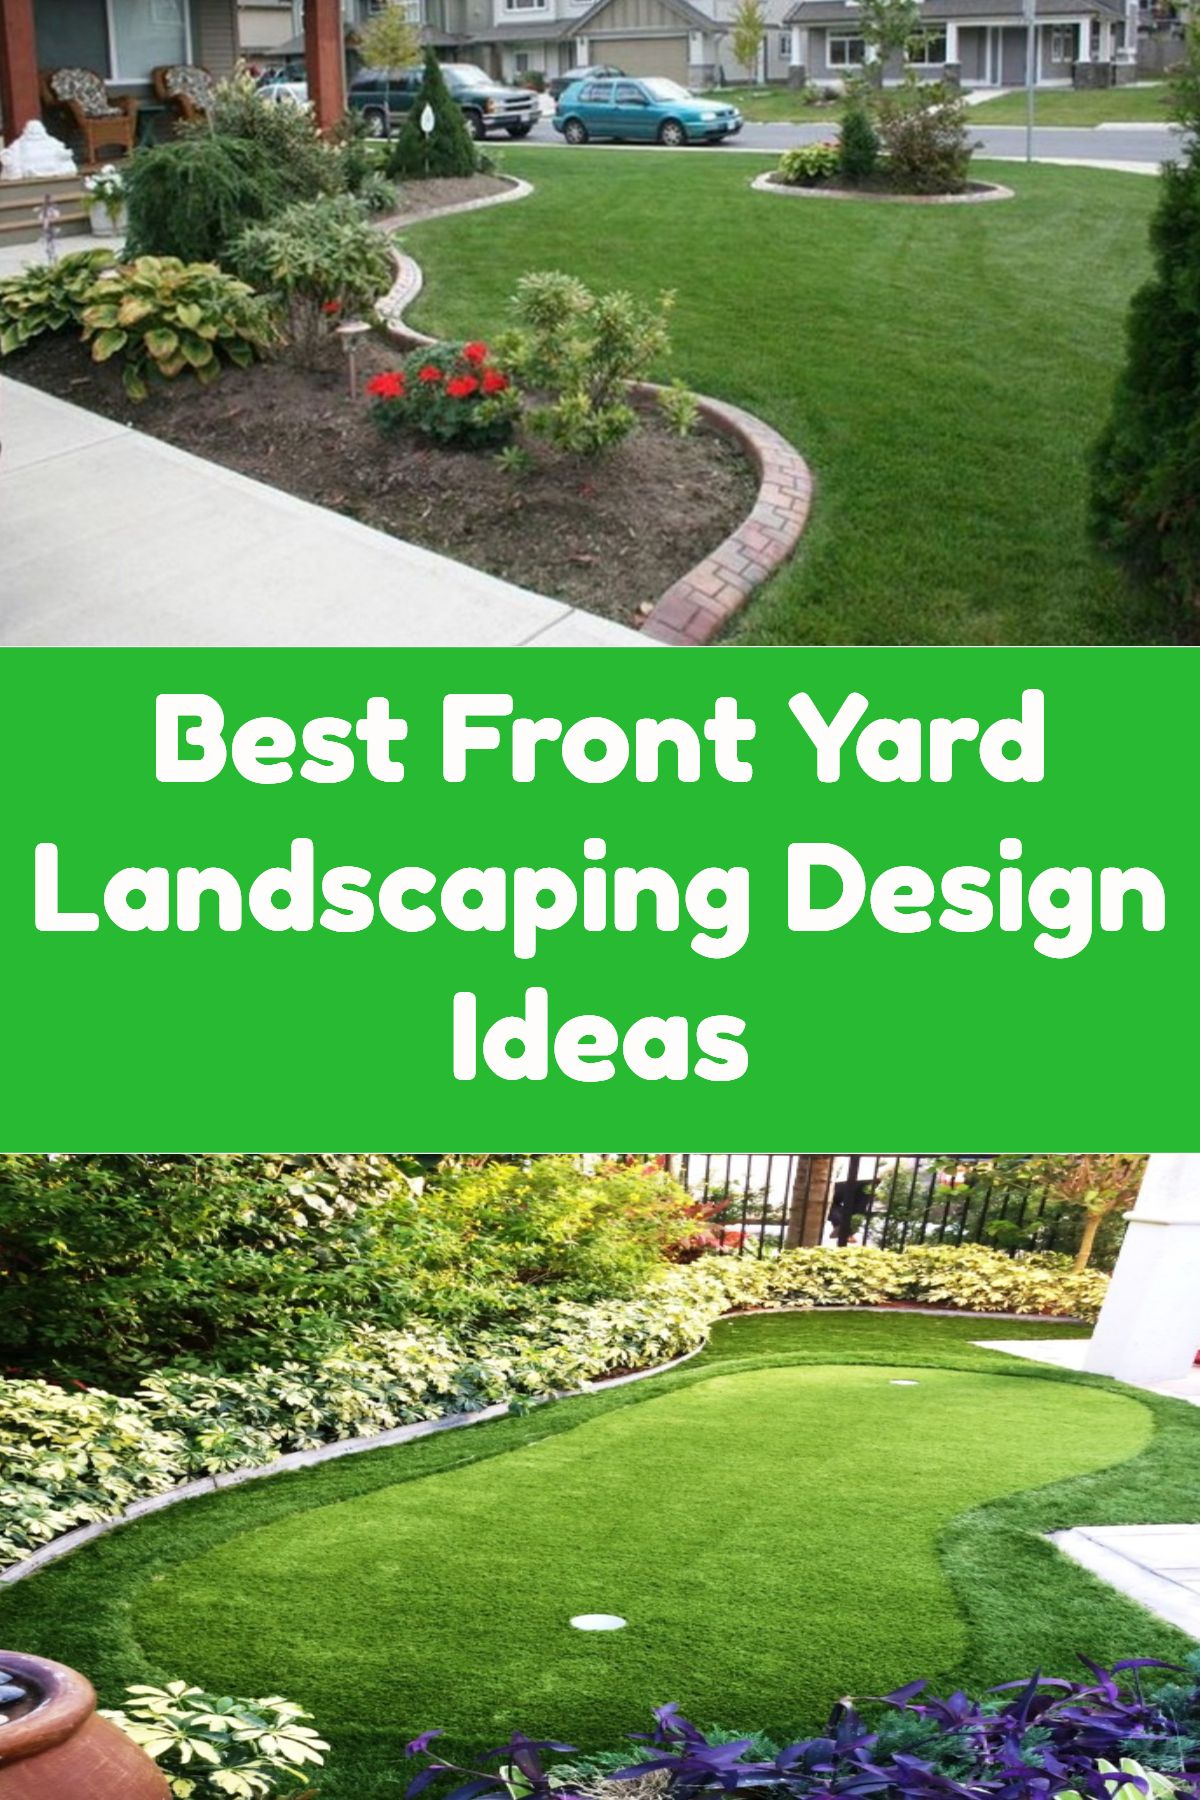 Best Front Yard Landscaping Design Ideas Landscape Ideas Tips